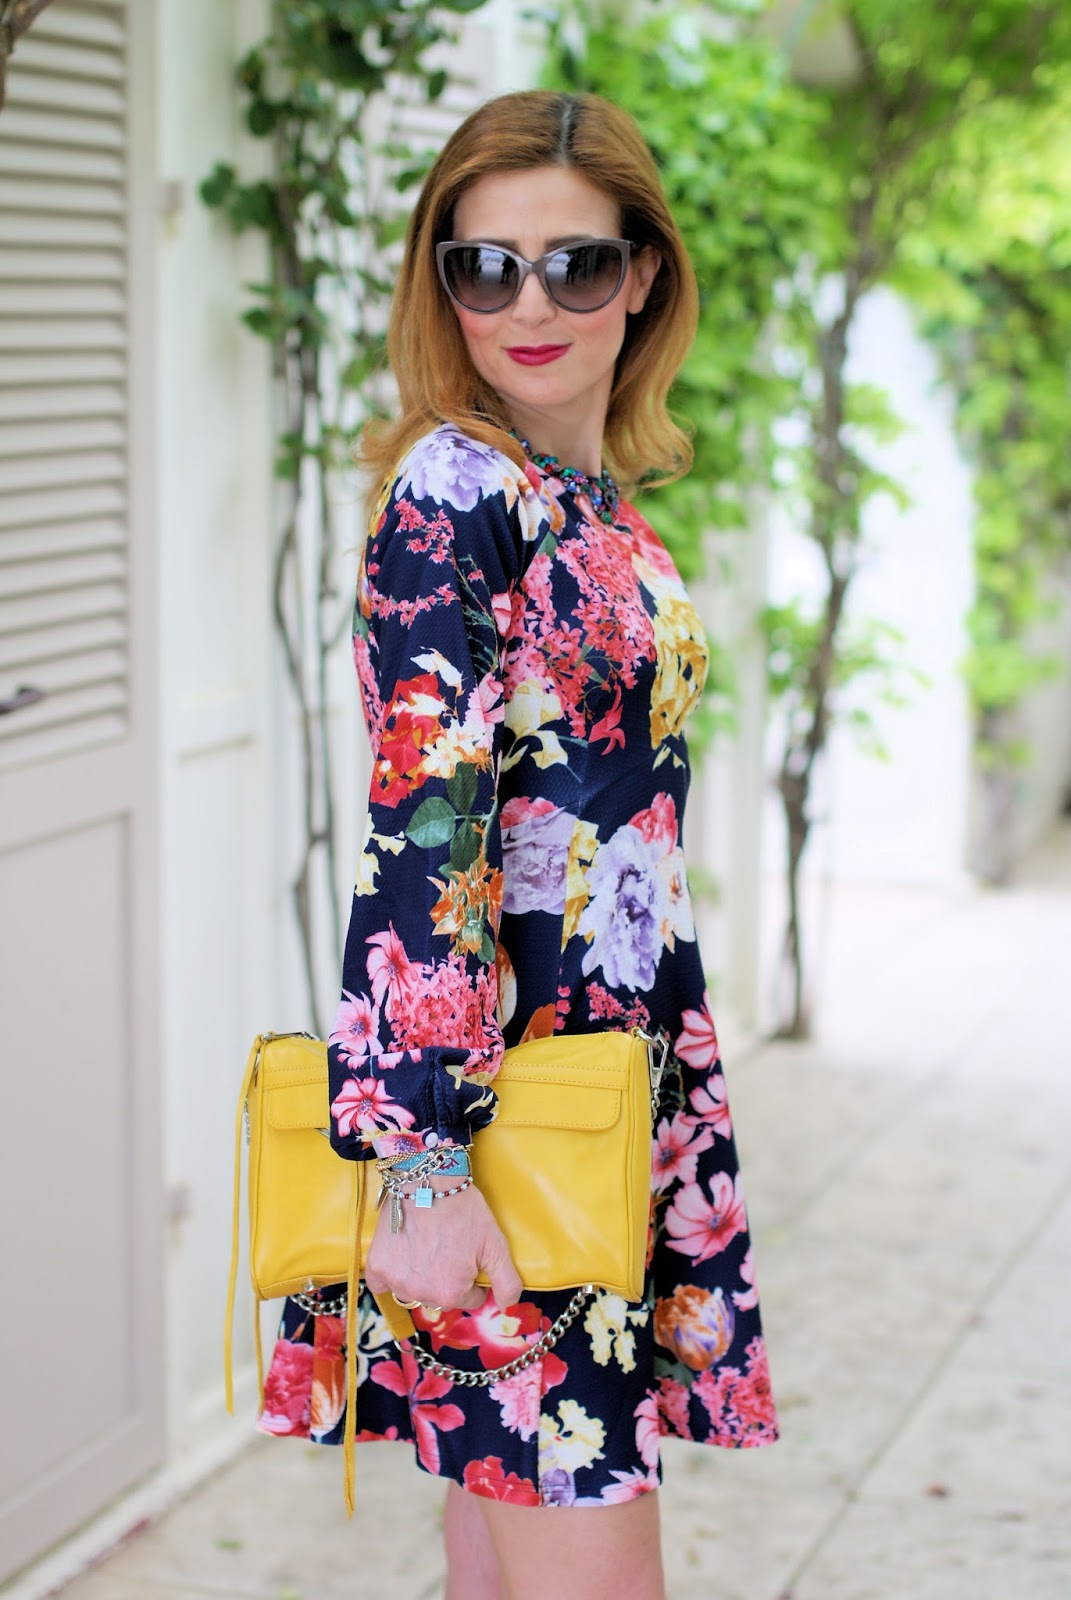 Asos floral dress and Rebecca Minkoff yellow bag on Fashion and Cookies fashion blog, fashion blogger style